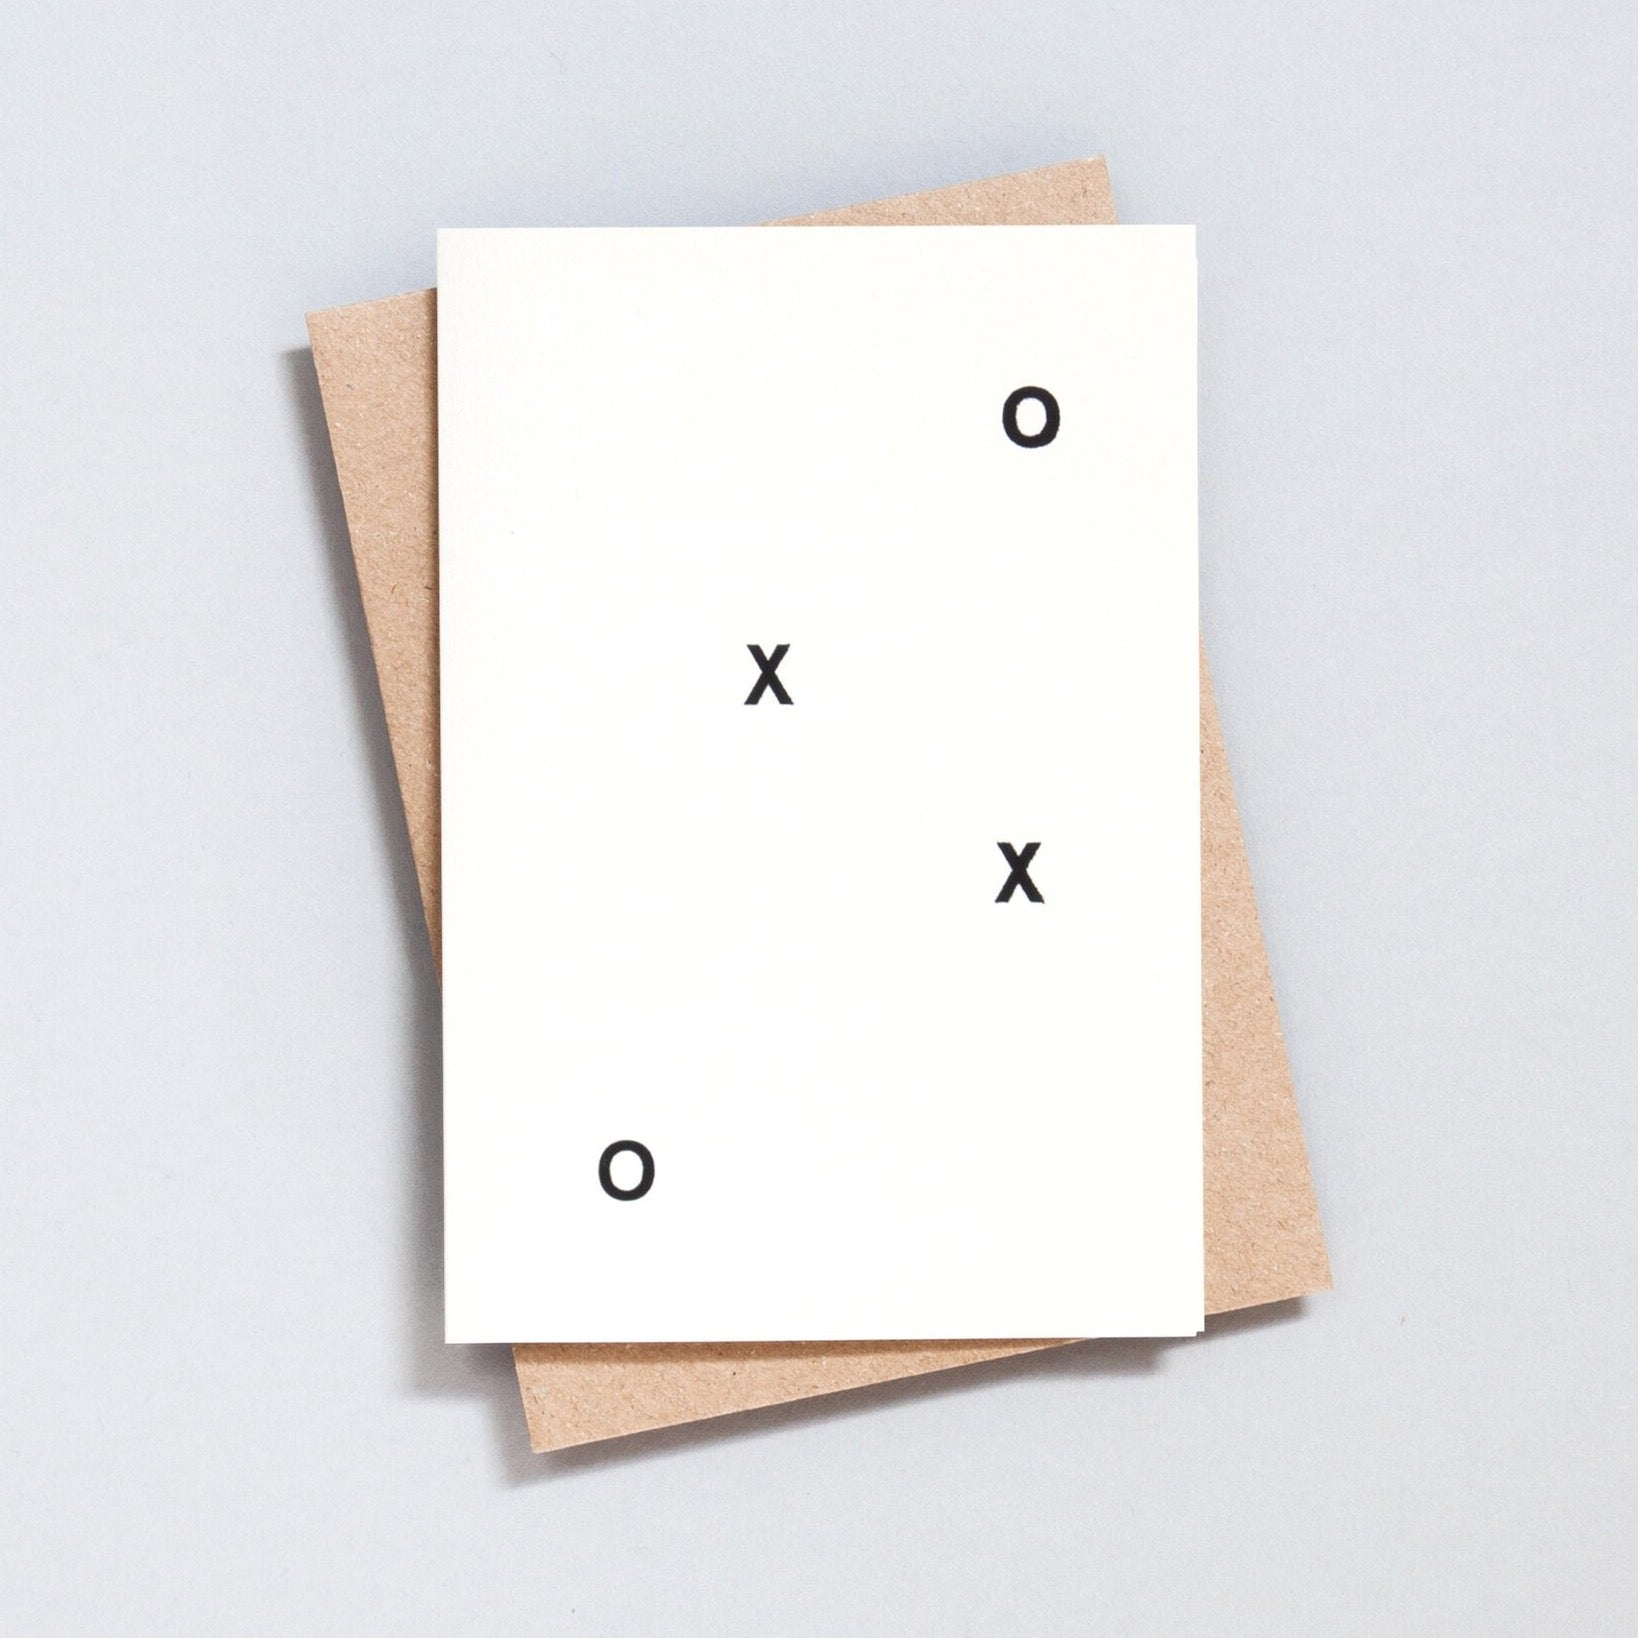 Ola Hand Printed Greetings Card - XOXO